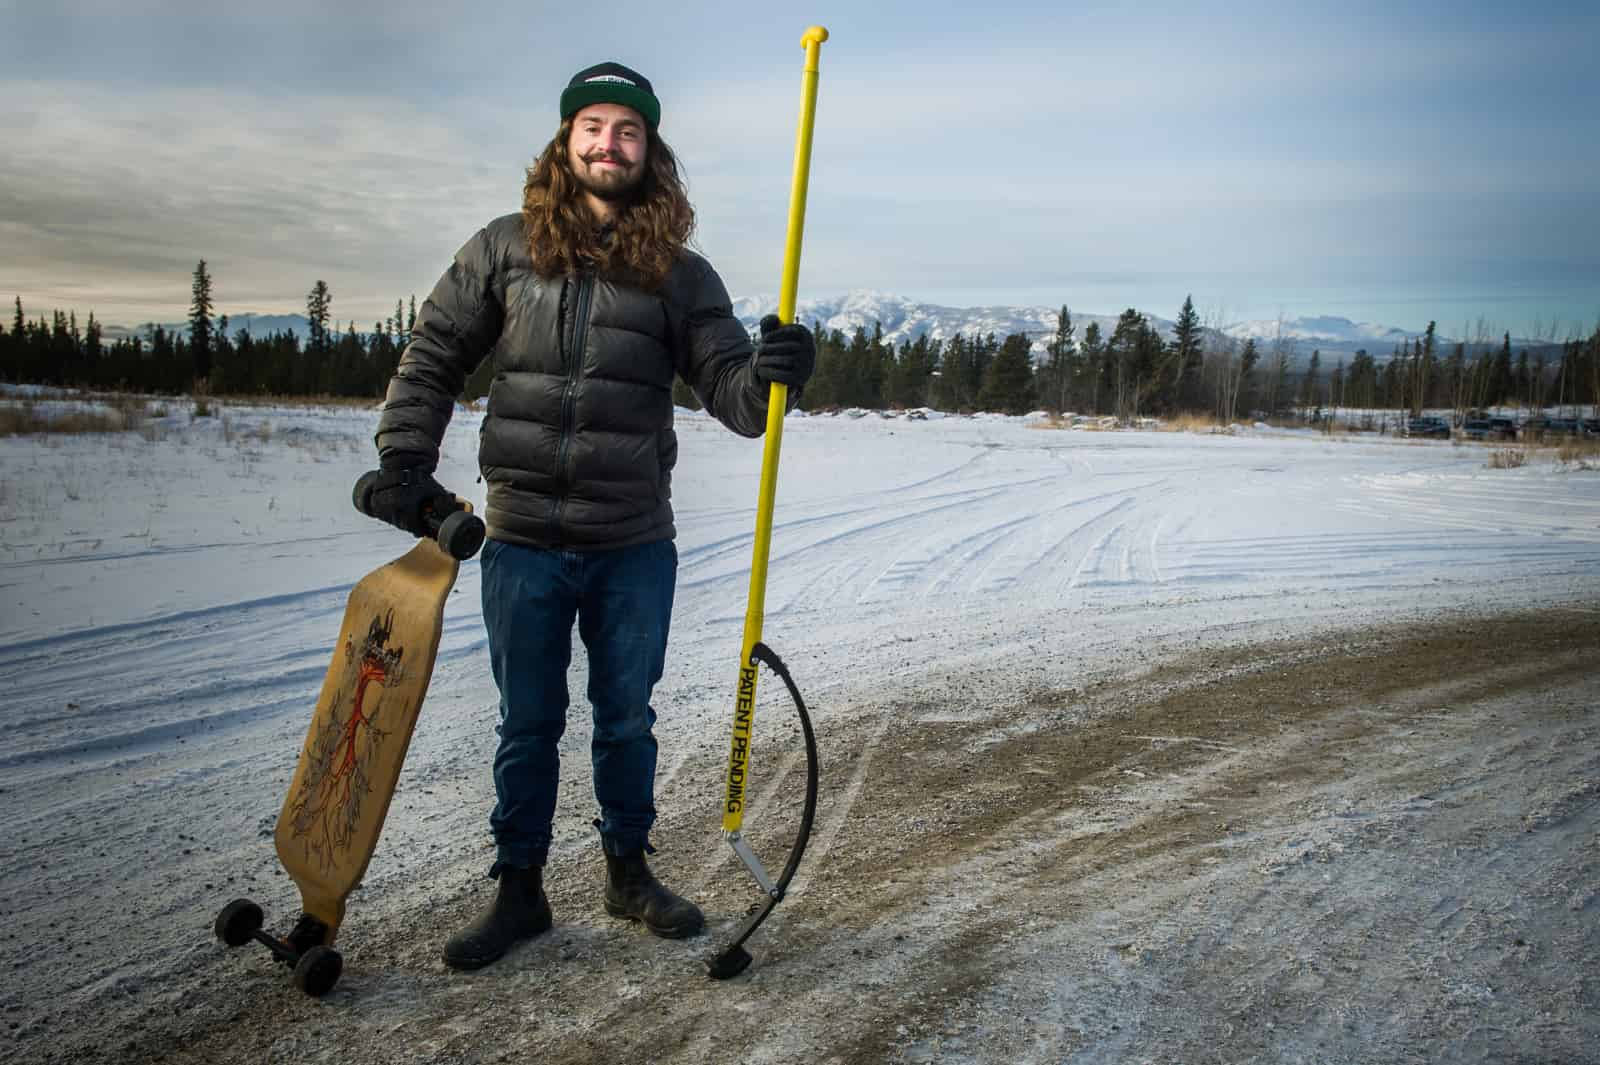 CCI client posing with his invention, a skateboard stick